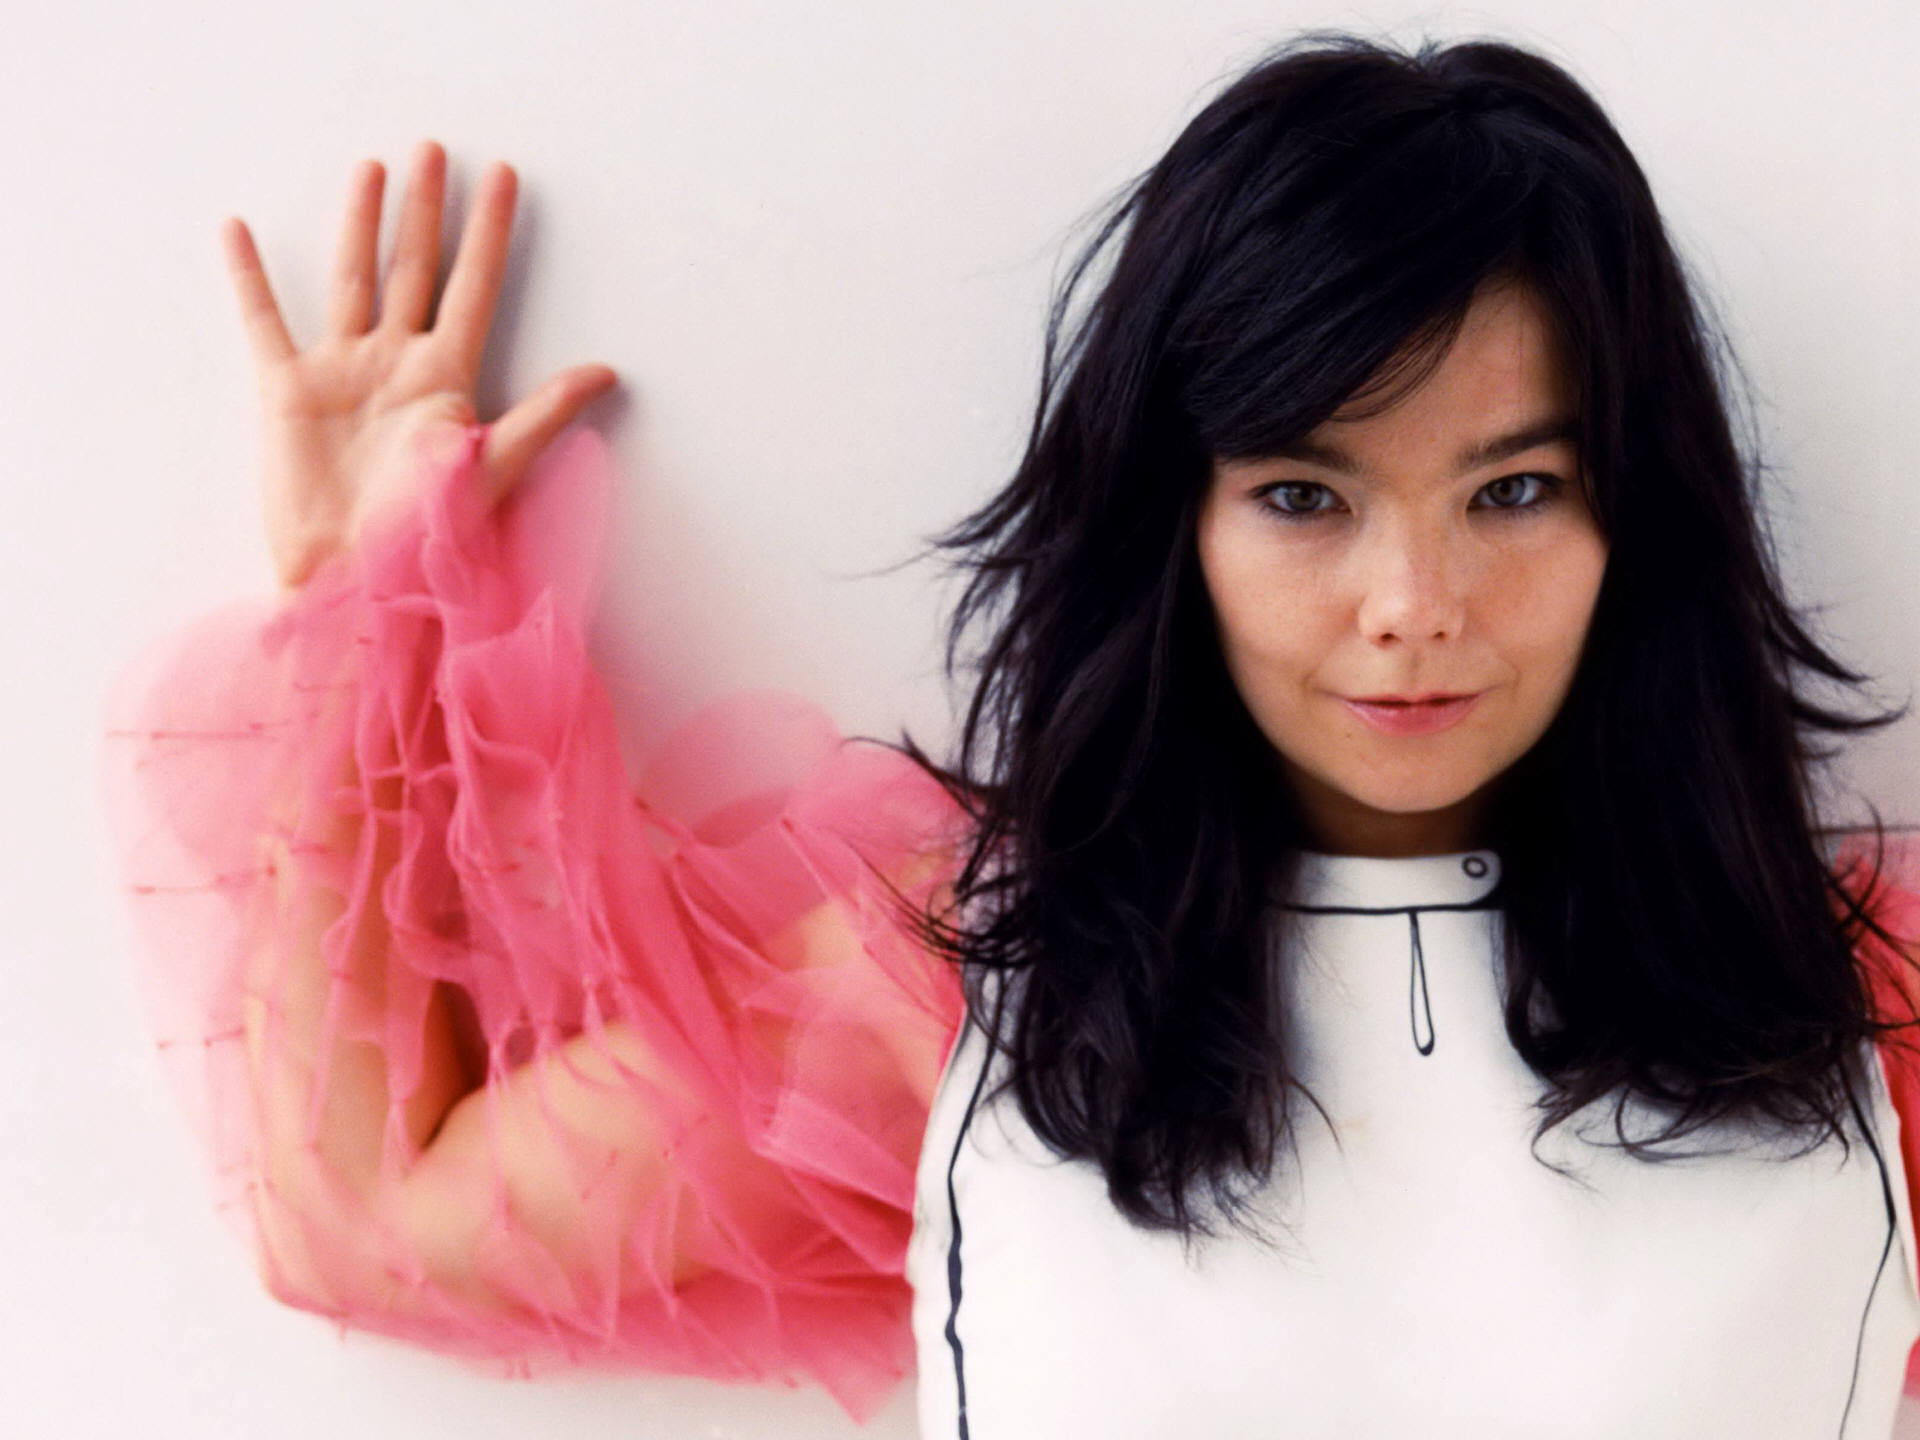 bjork-asks-to-sign-a-petition